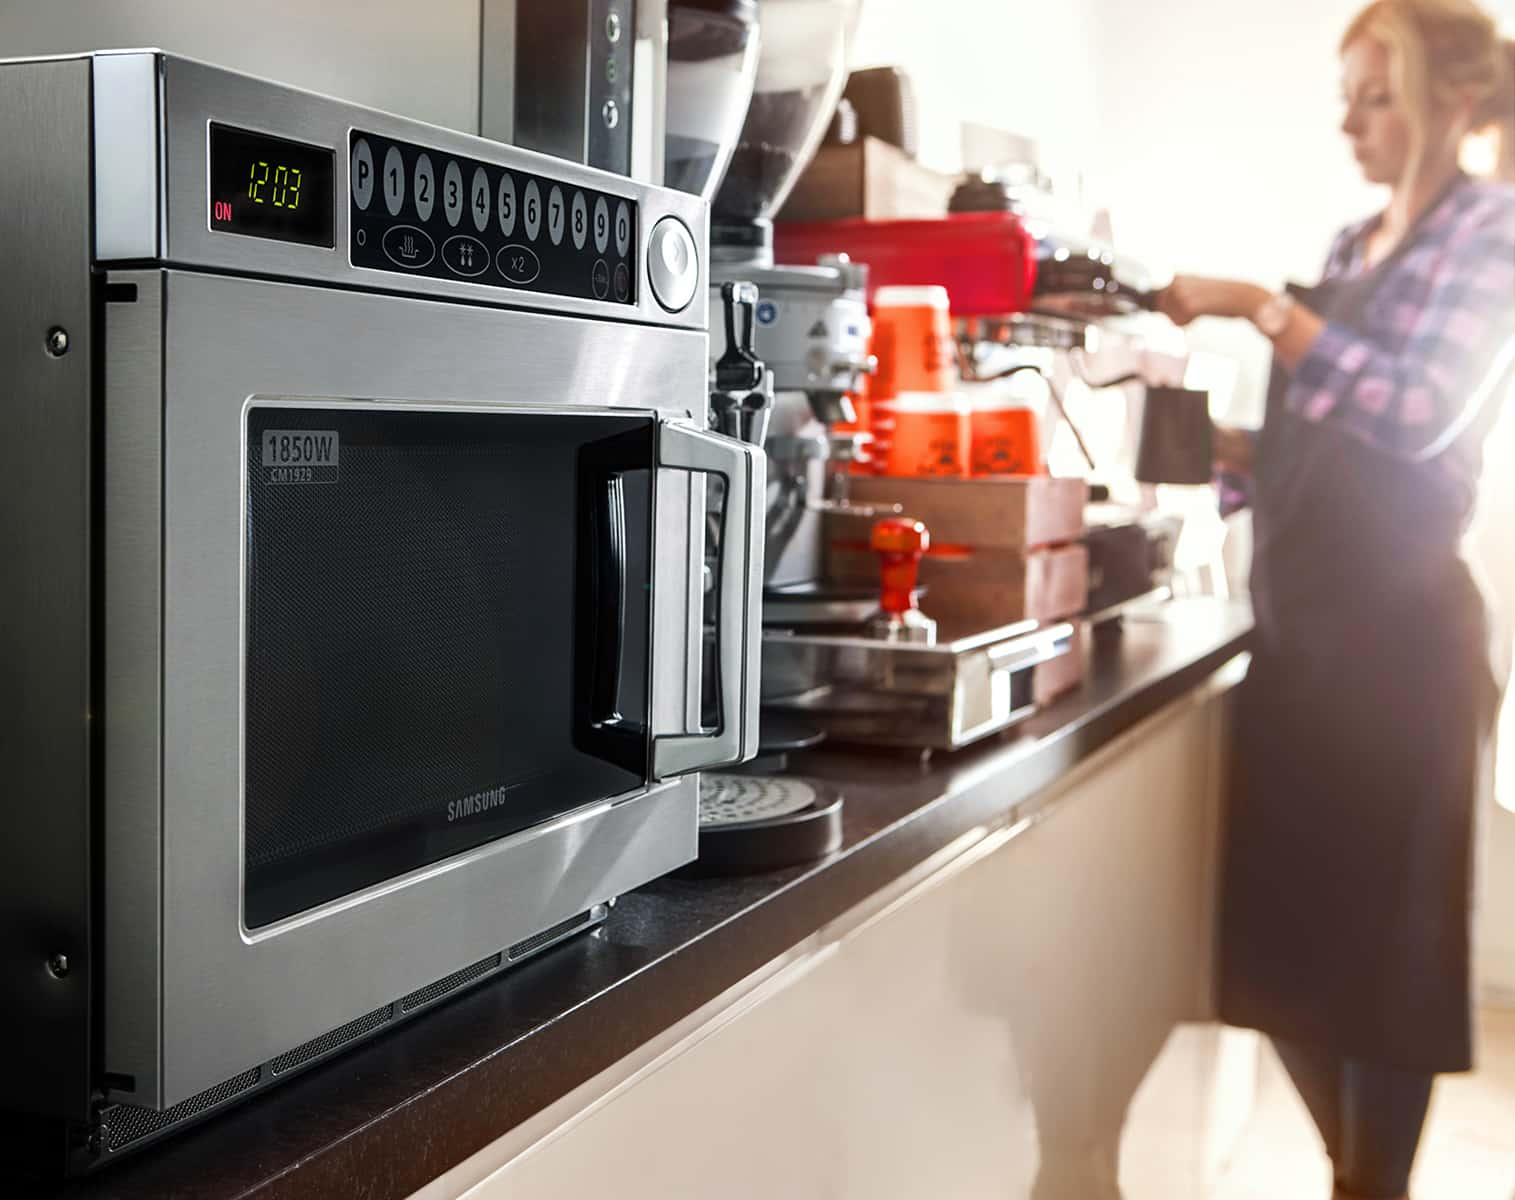 Samsung commercial microwave in kitchen environment